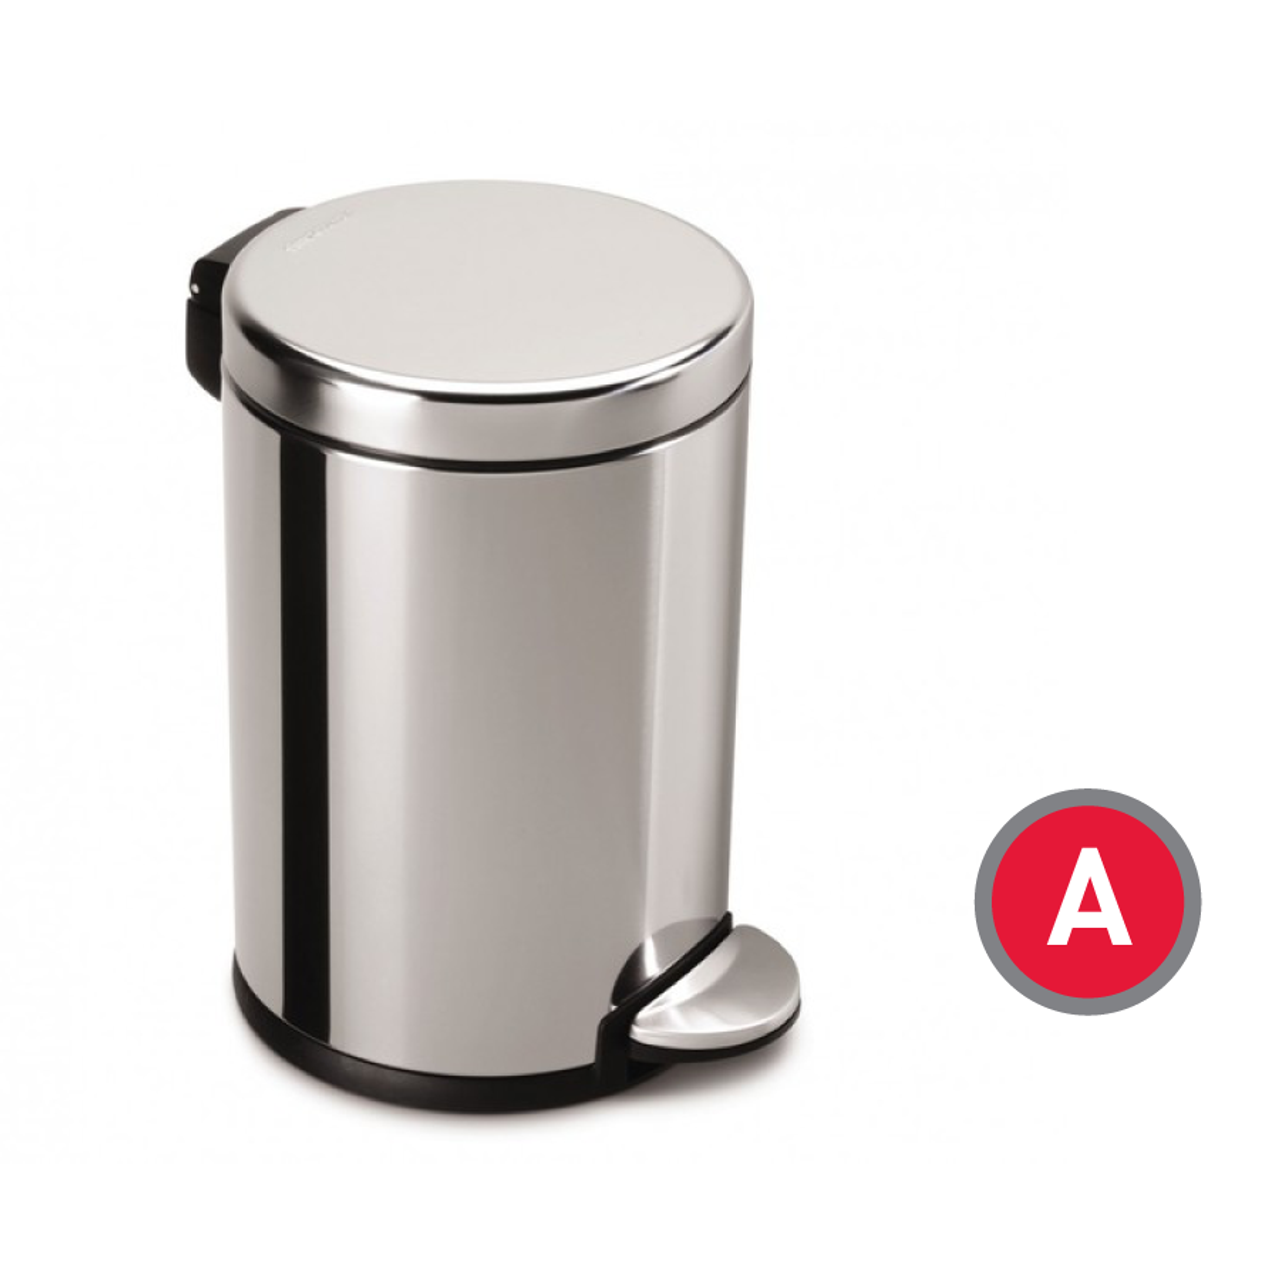 . Simplehuman Mini Round Step Can  Polished Stainless Steel  4 5 liter  CW1851